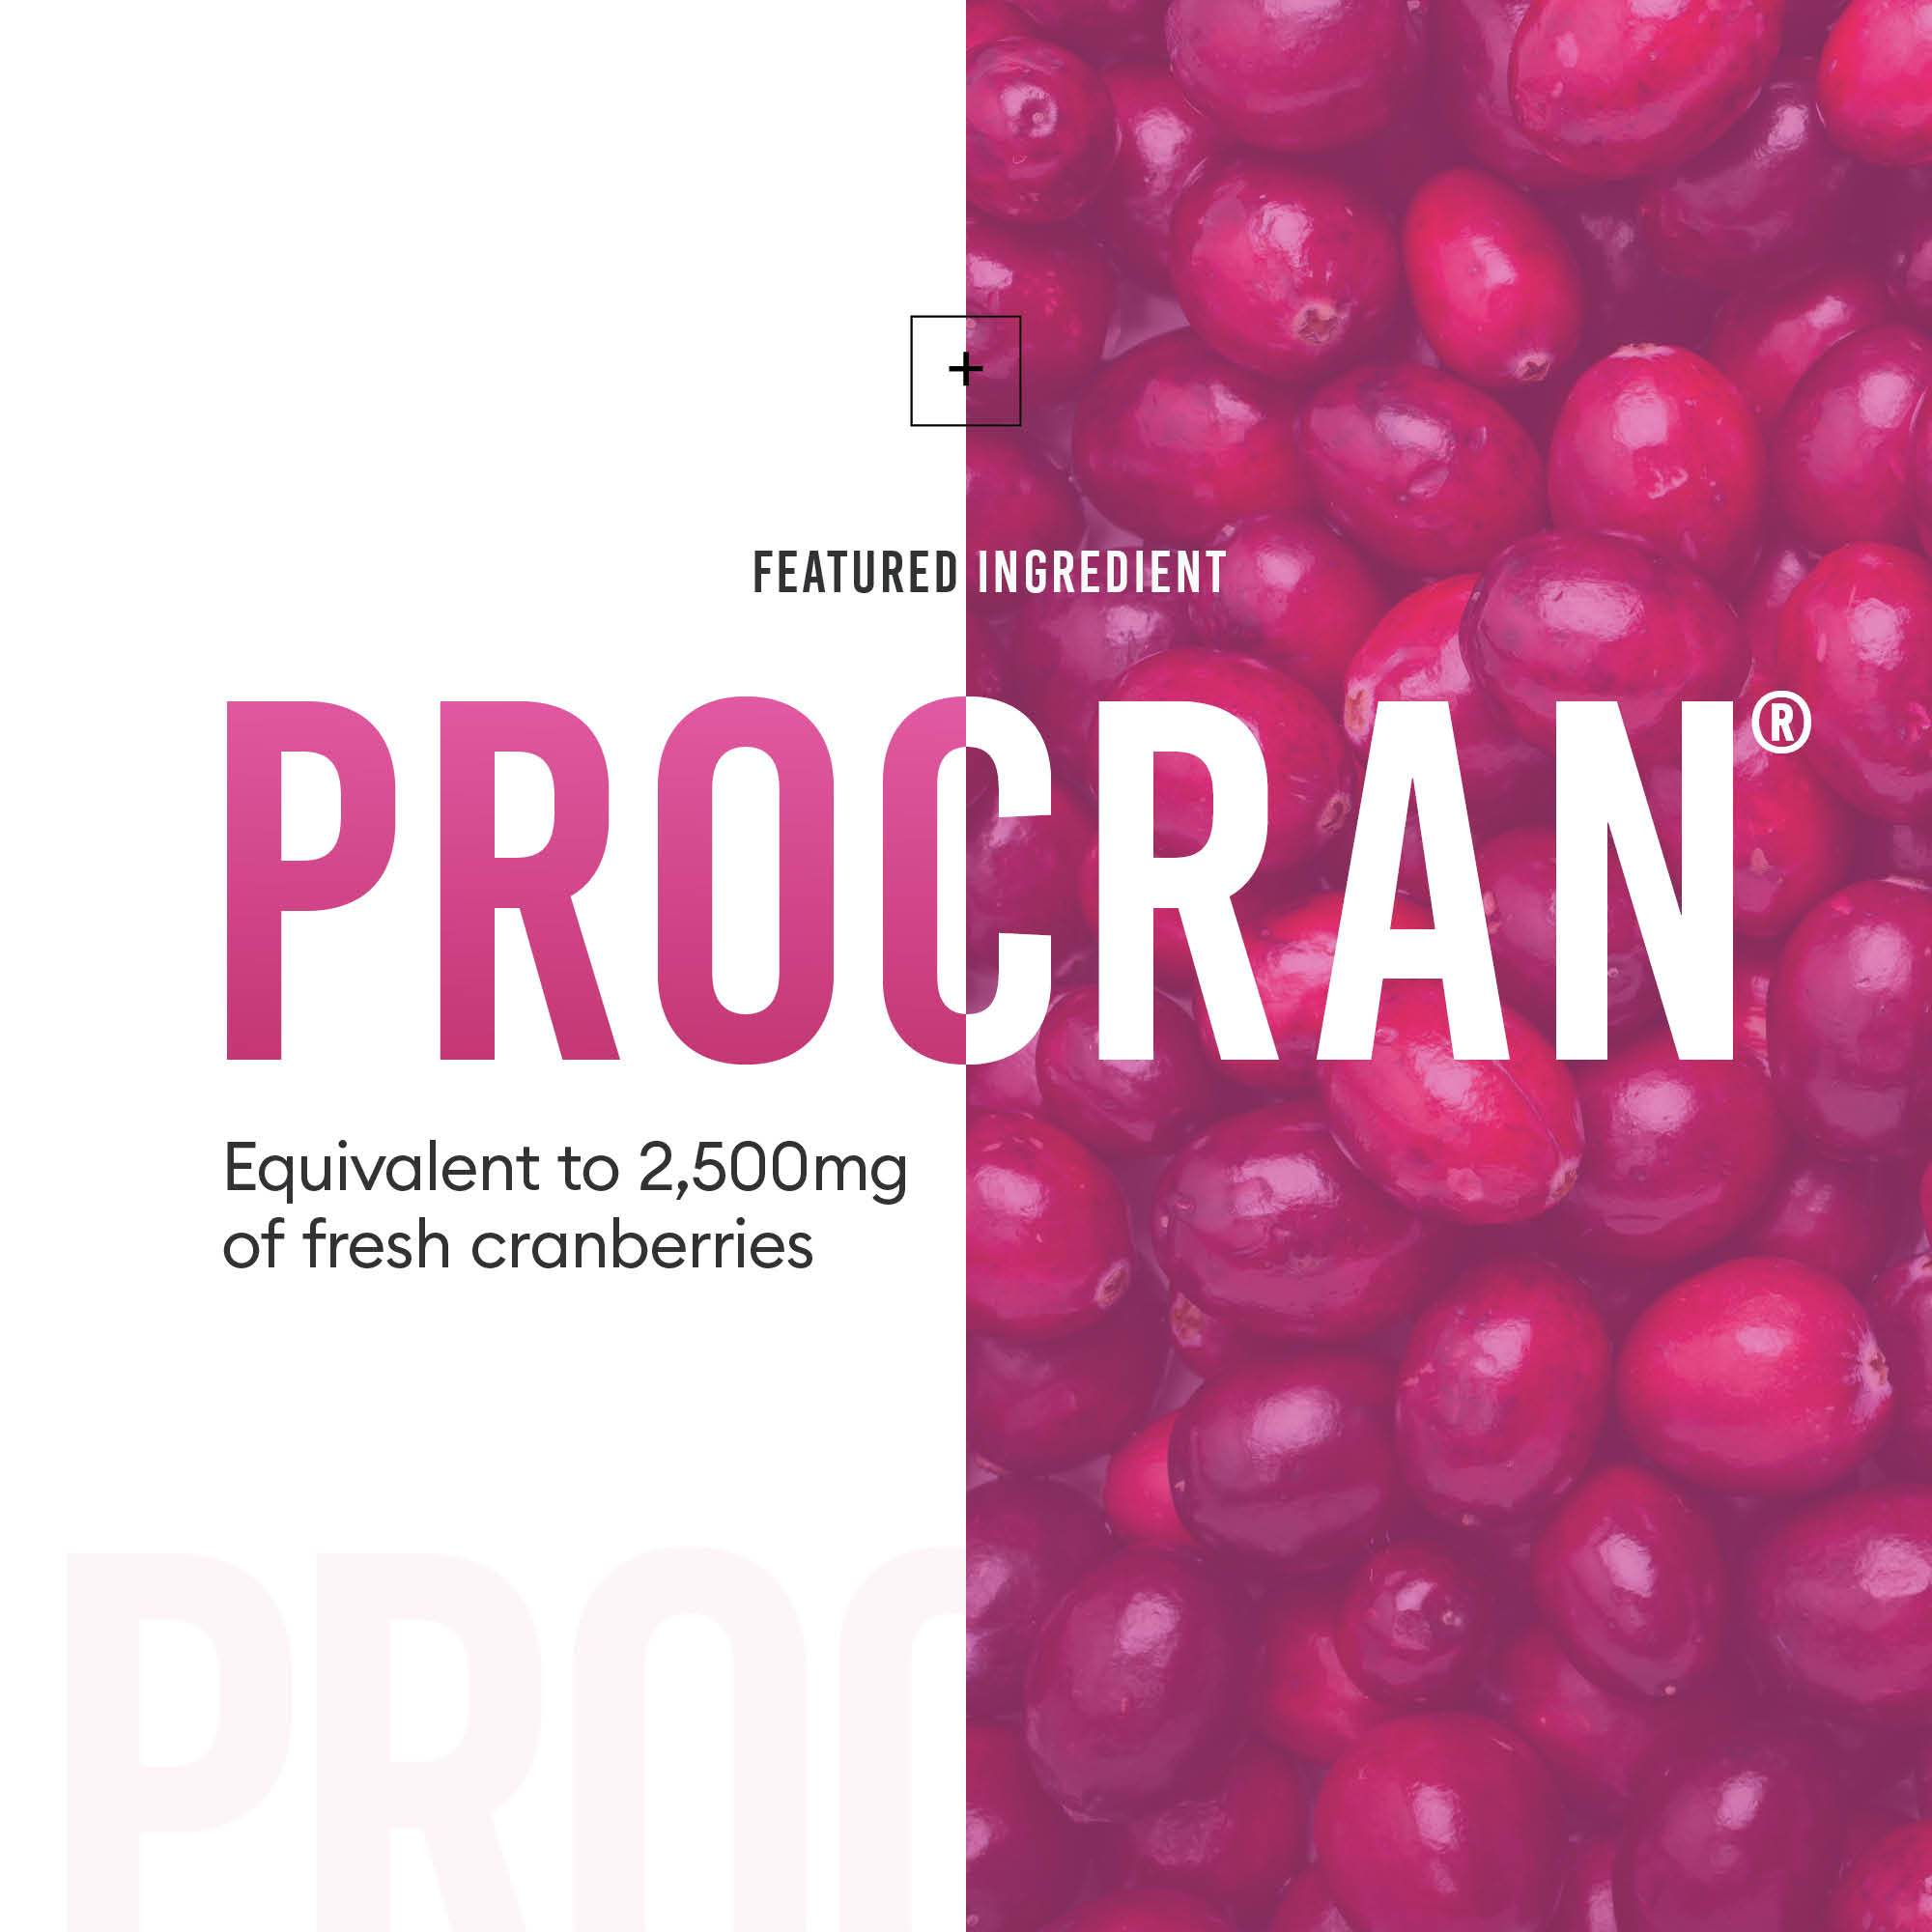 Probiotics for women featuring cranberry extract for urinary health